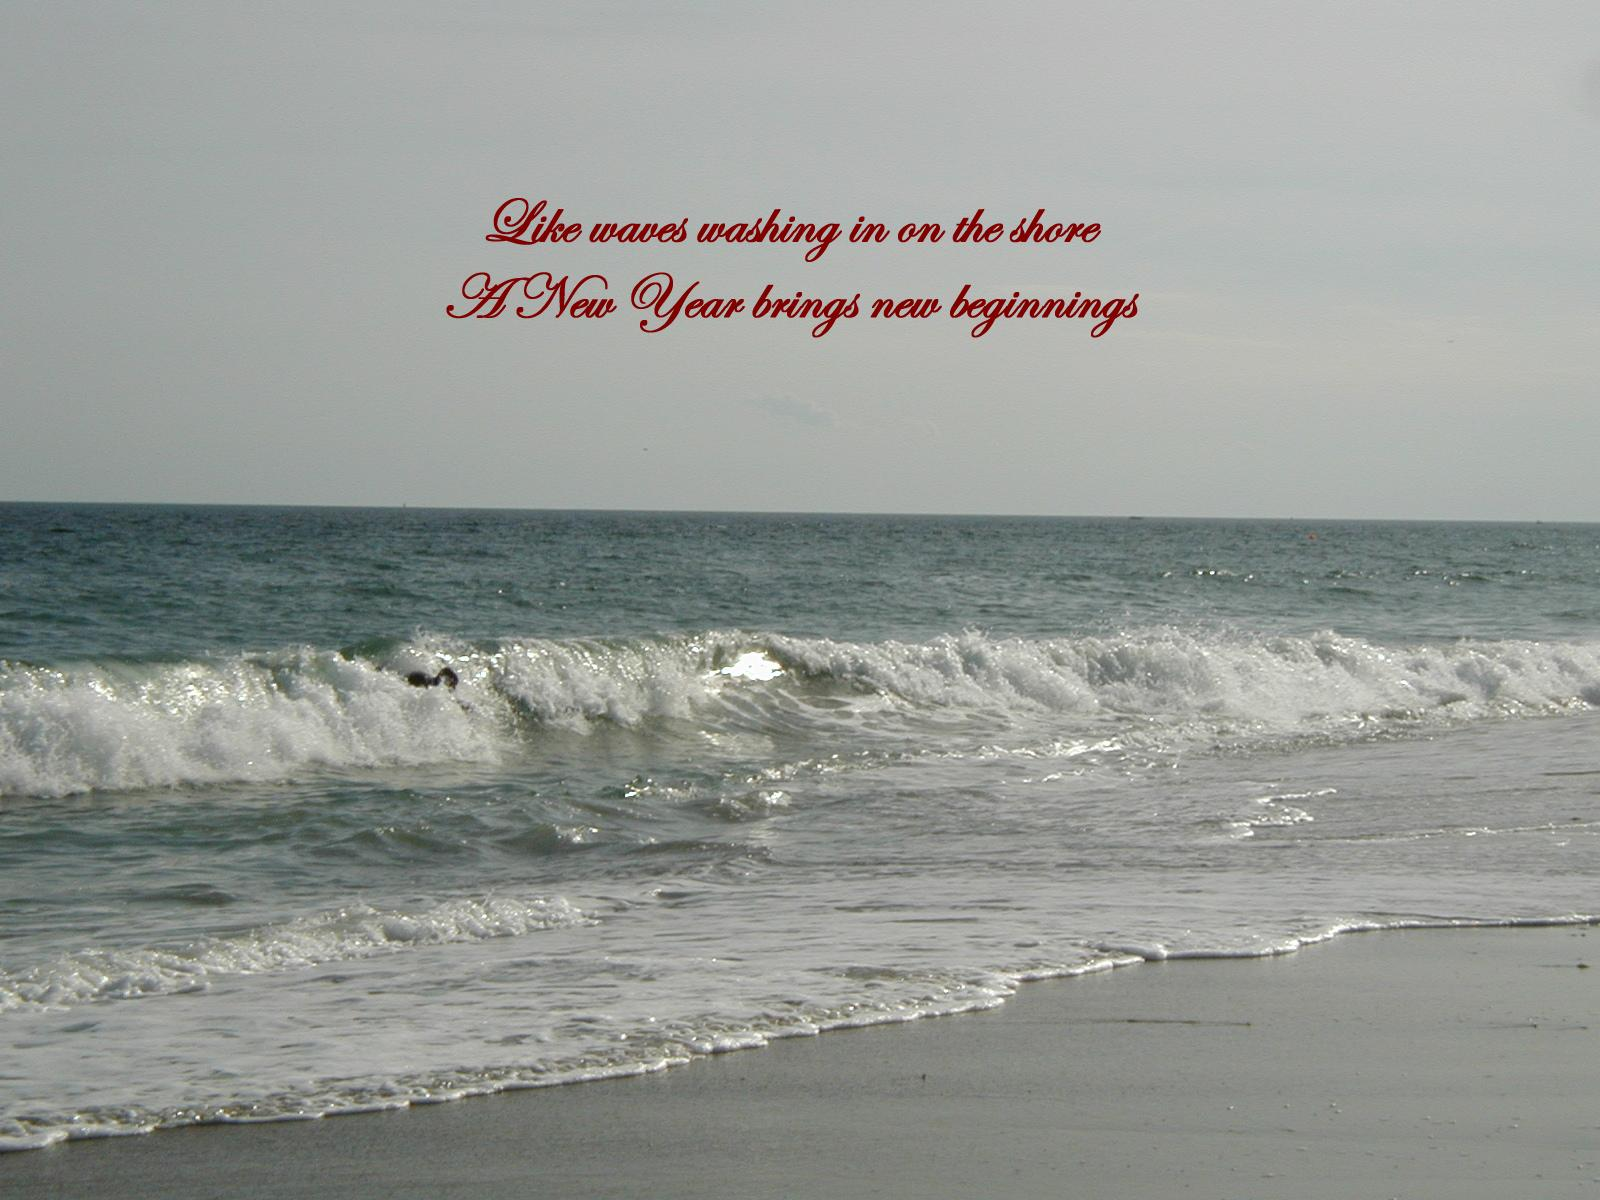 Like waves washing in on the shore A New Year brings new beginnings displayed at 500x375